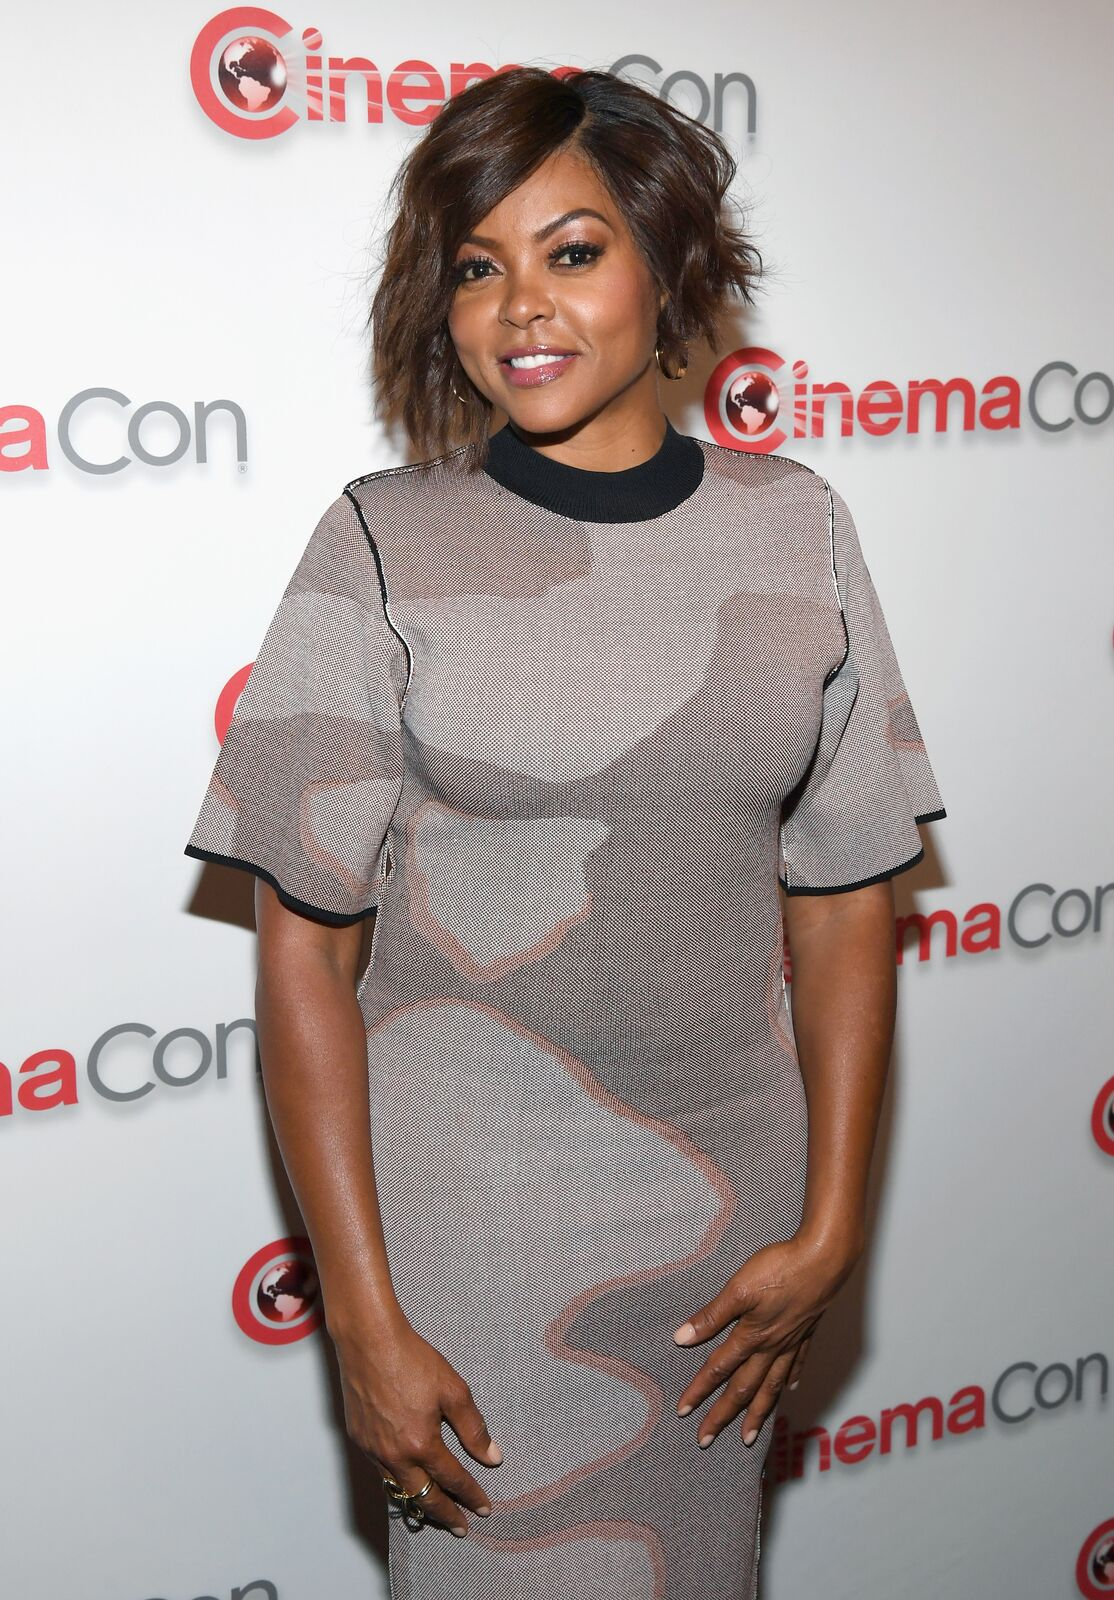 Actor Taraji P. Henson attends the CinemaCon 2018 Paramount Pictures Presentation Highlighting Its Summer of 2018 | Photo: Getty Images